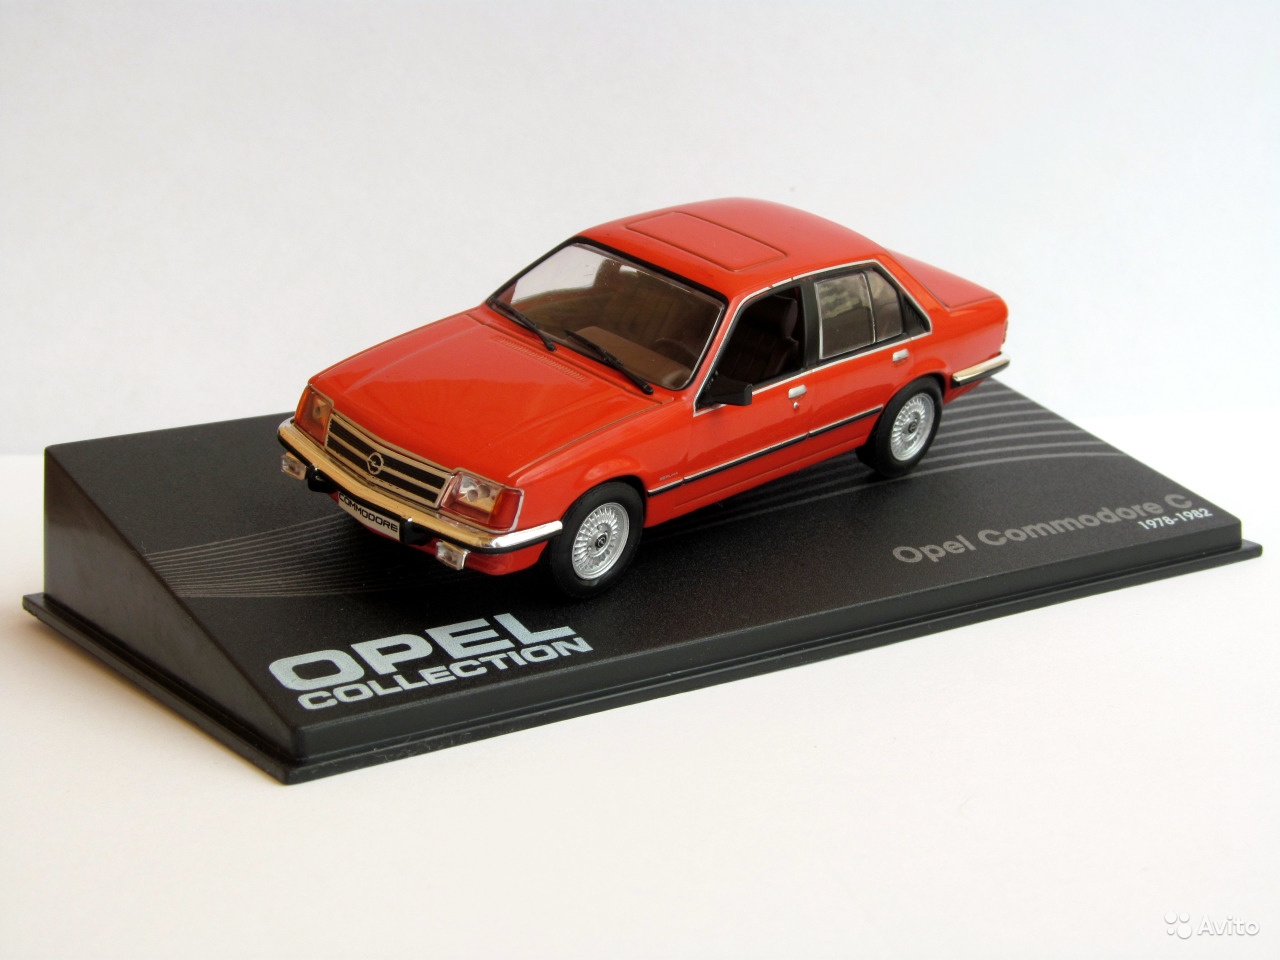 Opel Commodore C 1:43 Opel collection časopis s modelem